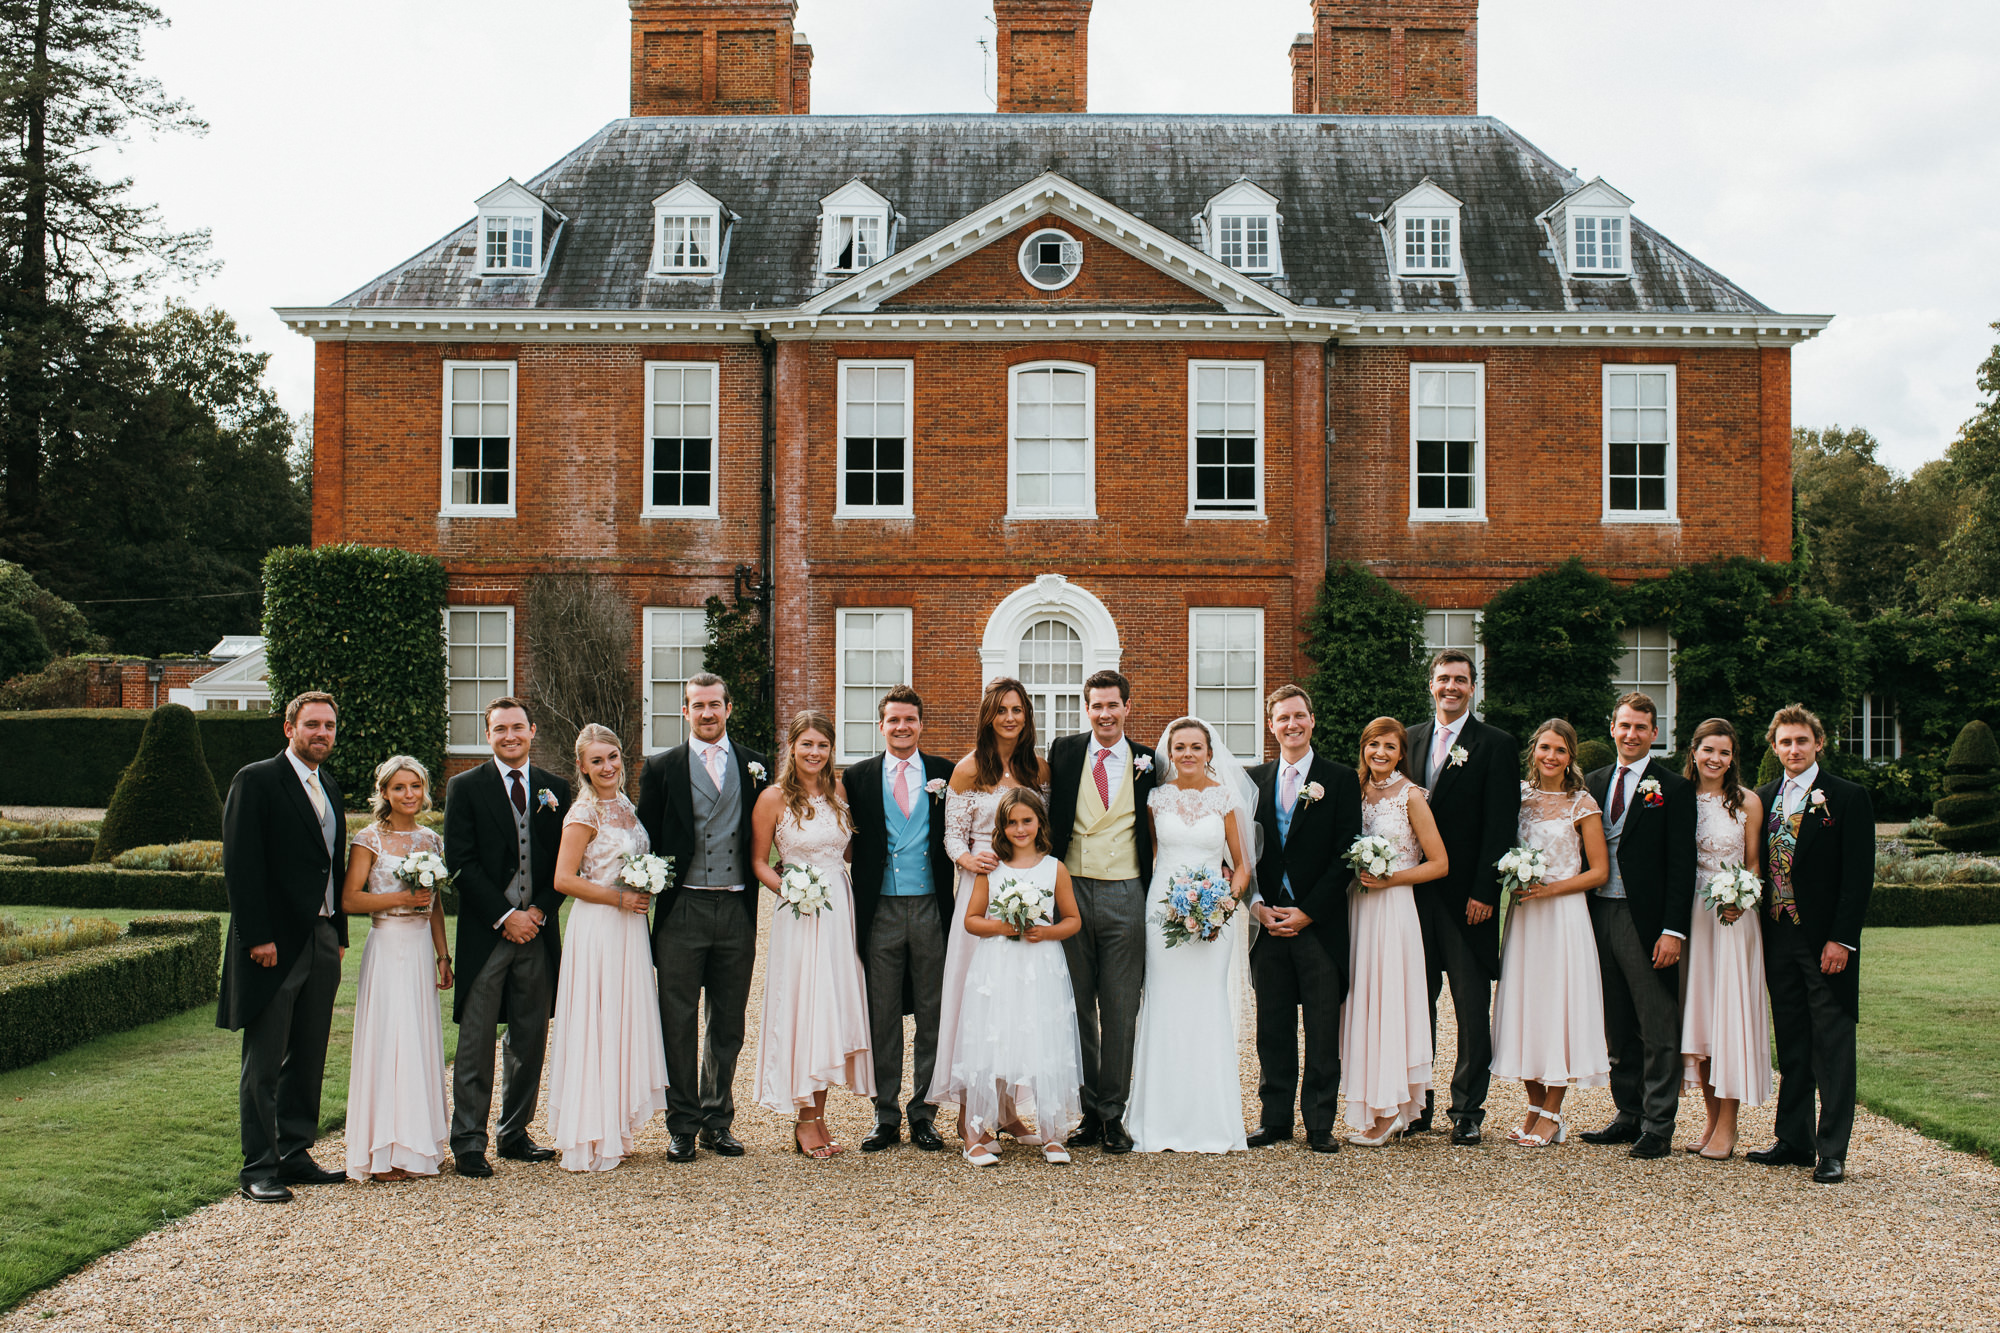 Squerryes court group wedding photo